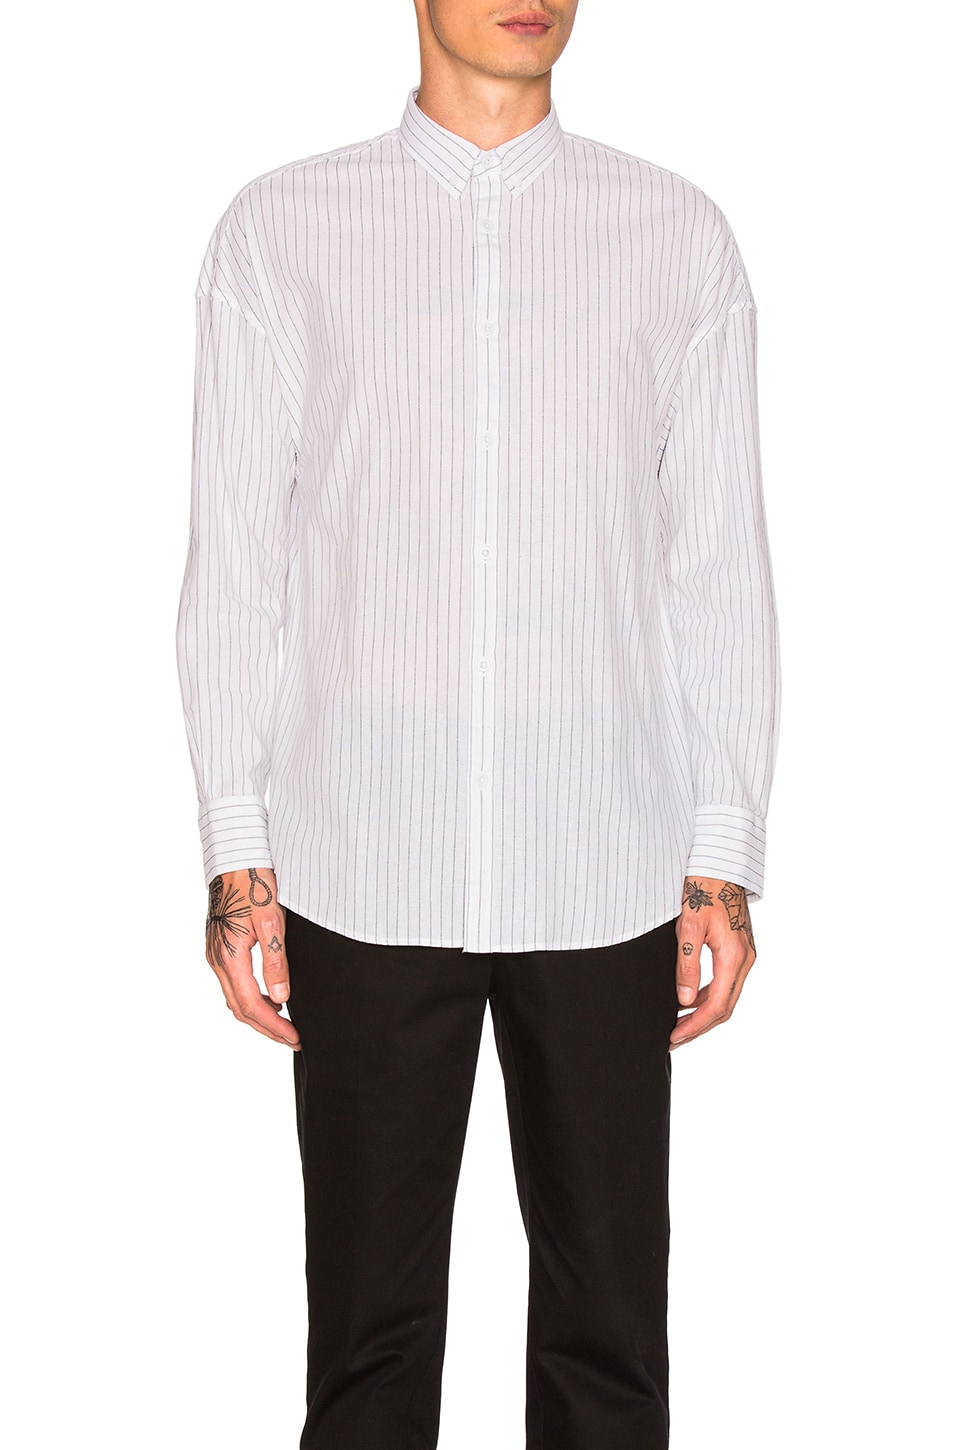 Pinstripe Rugger Shirt by Zanerobe